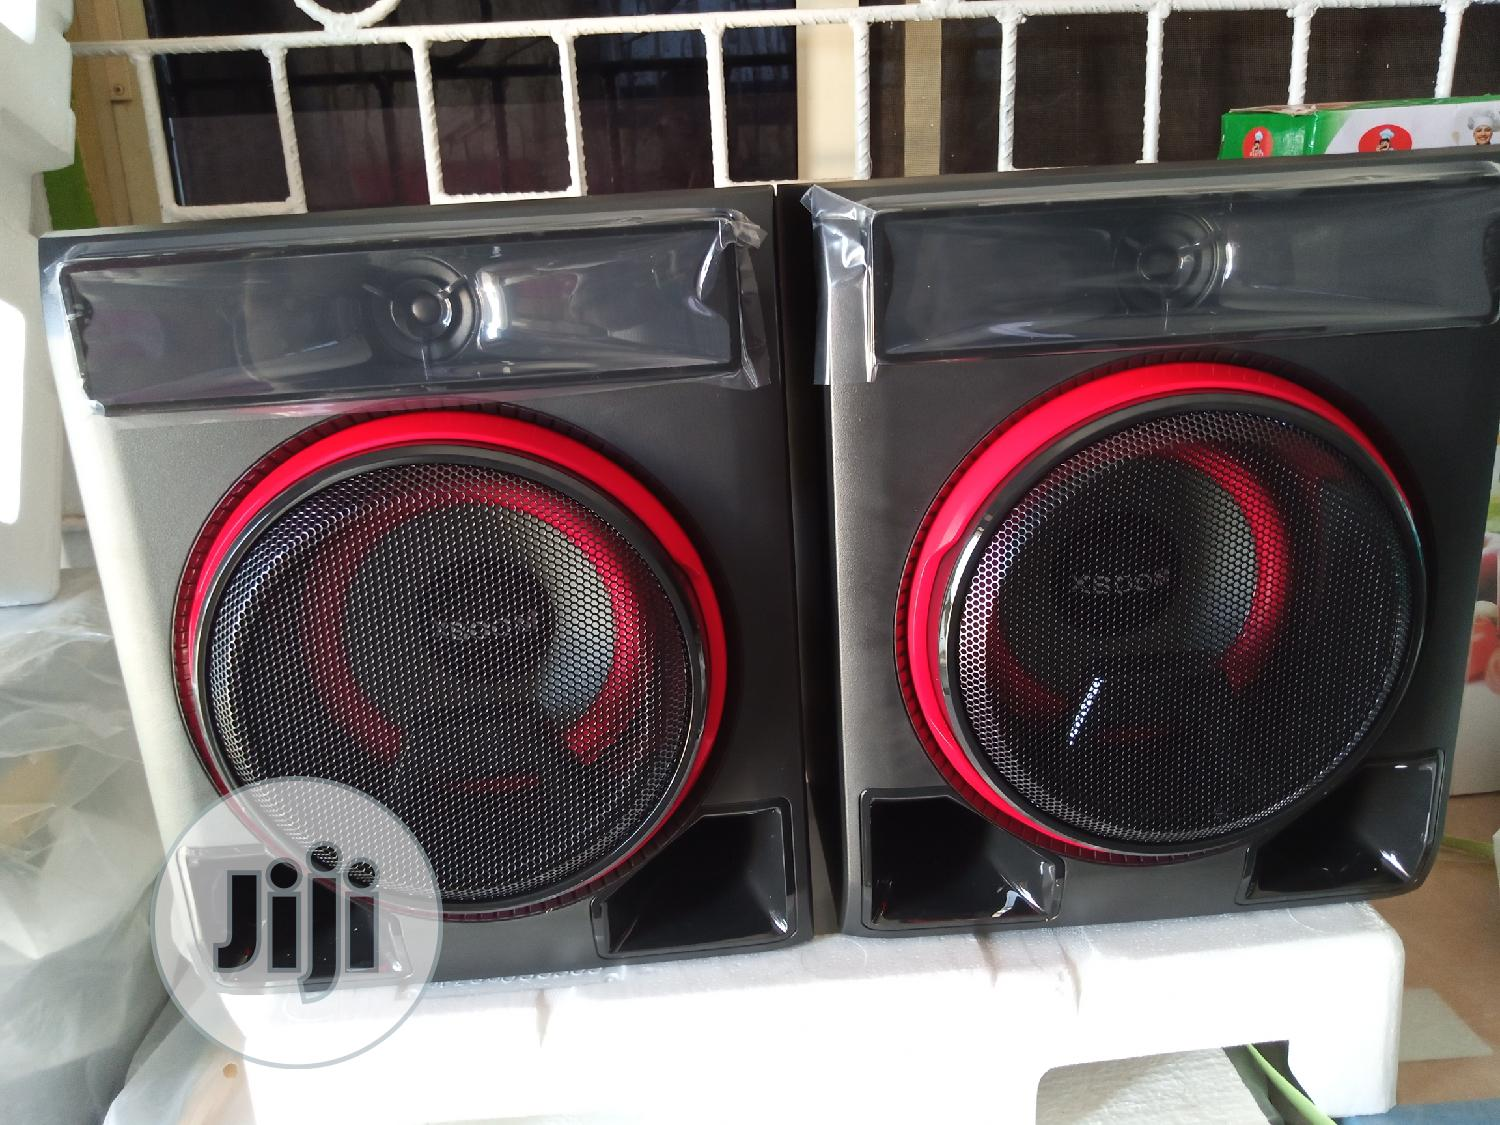 LG XBOOM + 950watt + Mini Hi-fi System | Audio & Music Equipment for sale in Alimosho, Lagos State, Nigeria